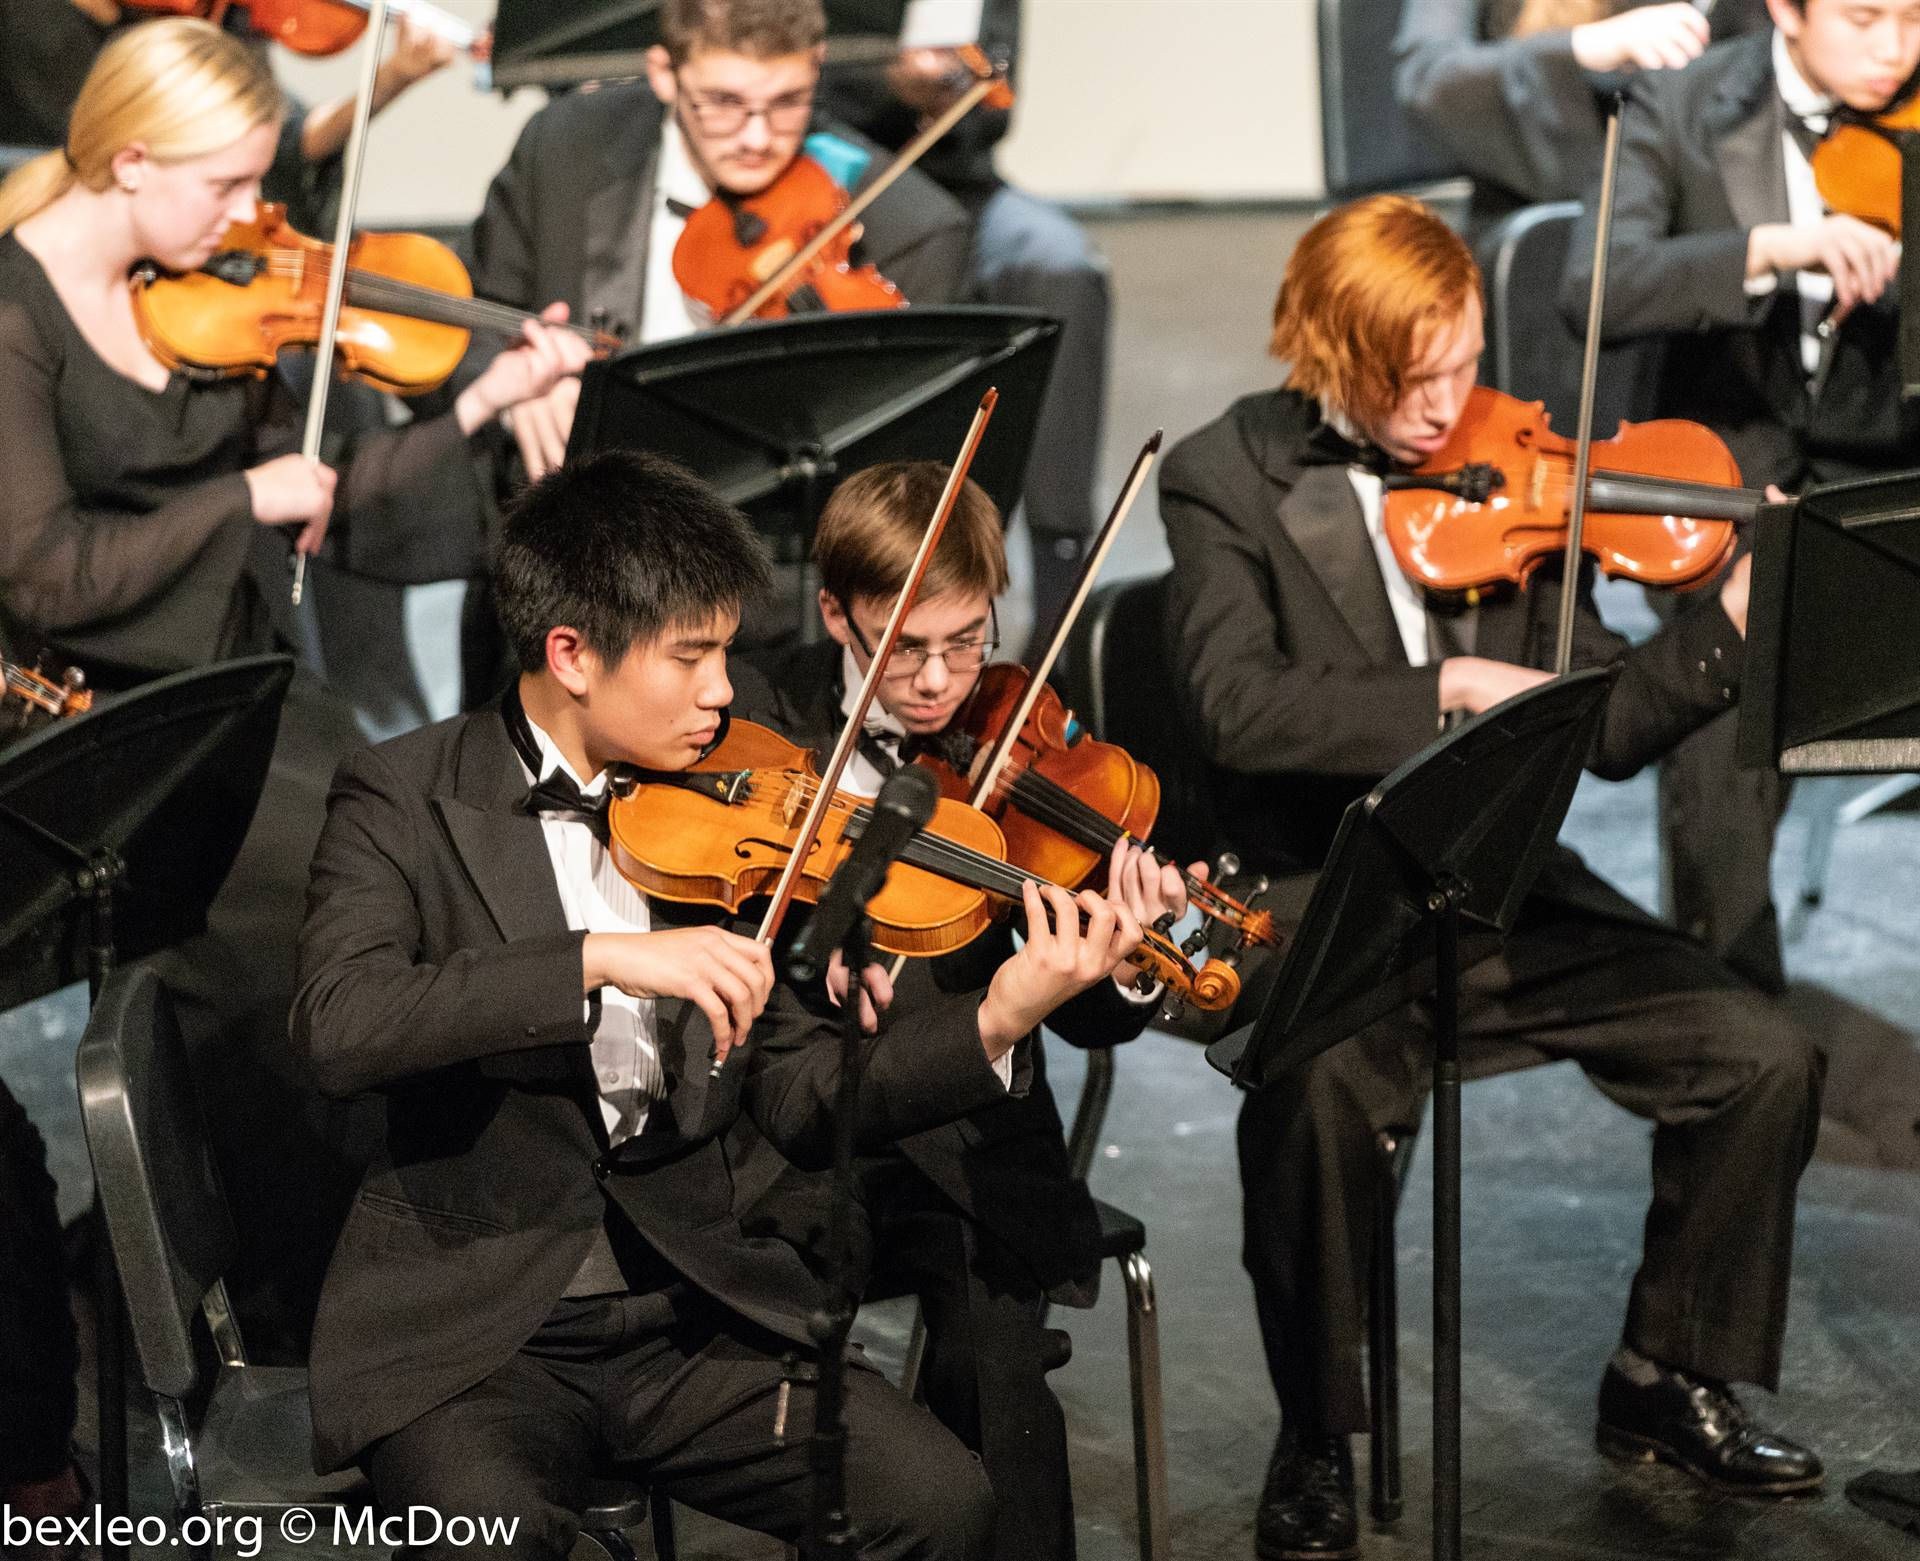 Joseph Lin, Nick Rankin, and Teddy McIntyre perform in the Winter Orchestra Concert